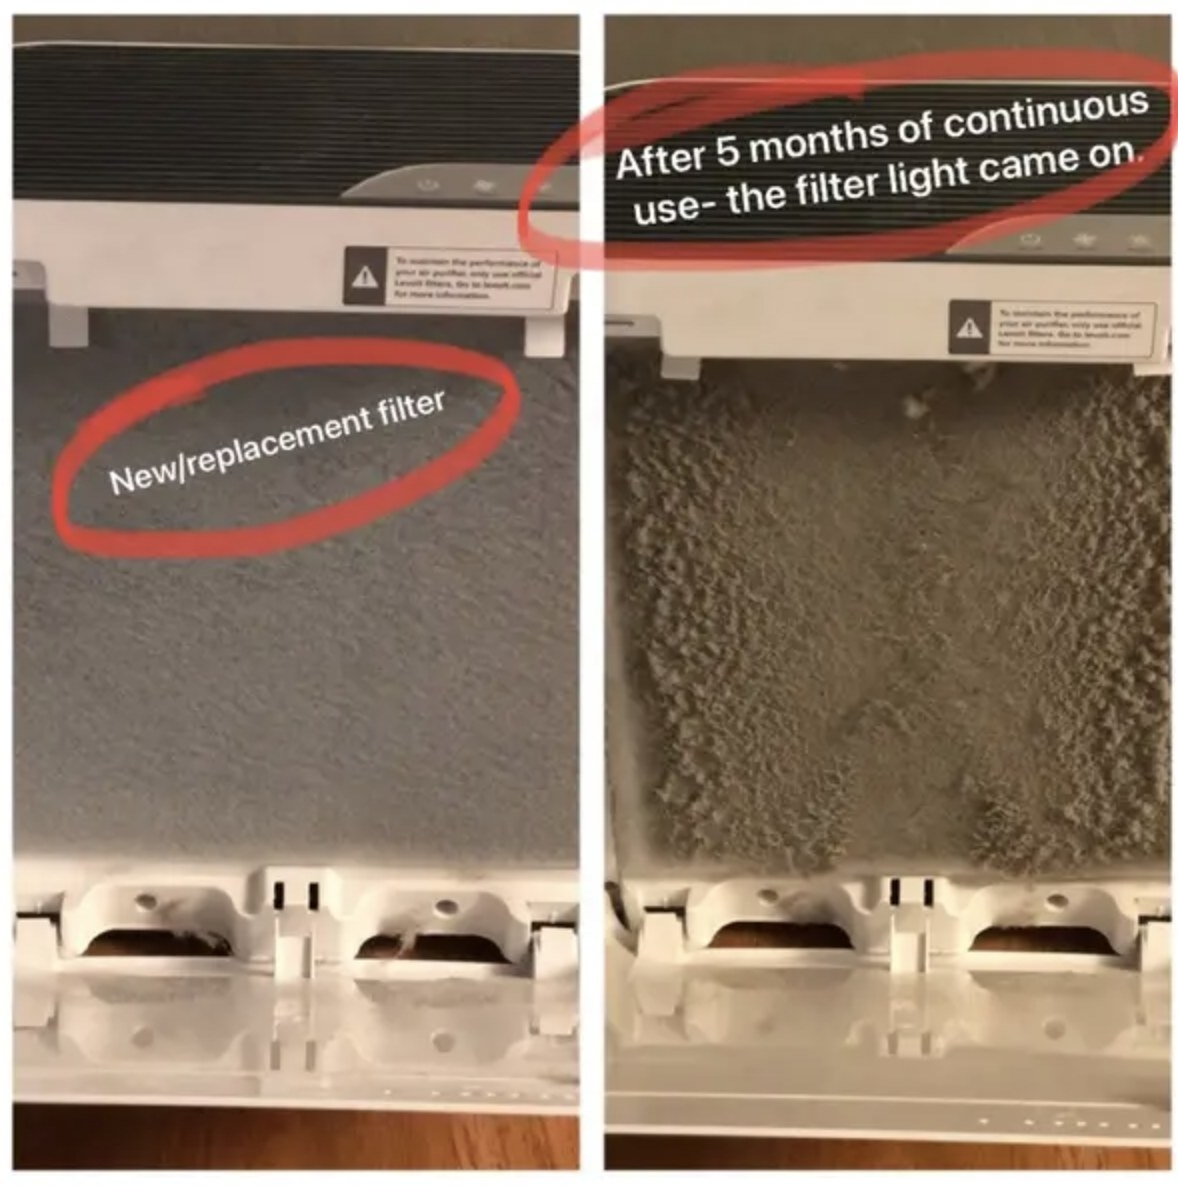 A before and after of a filter from an air purifying system